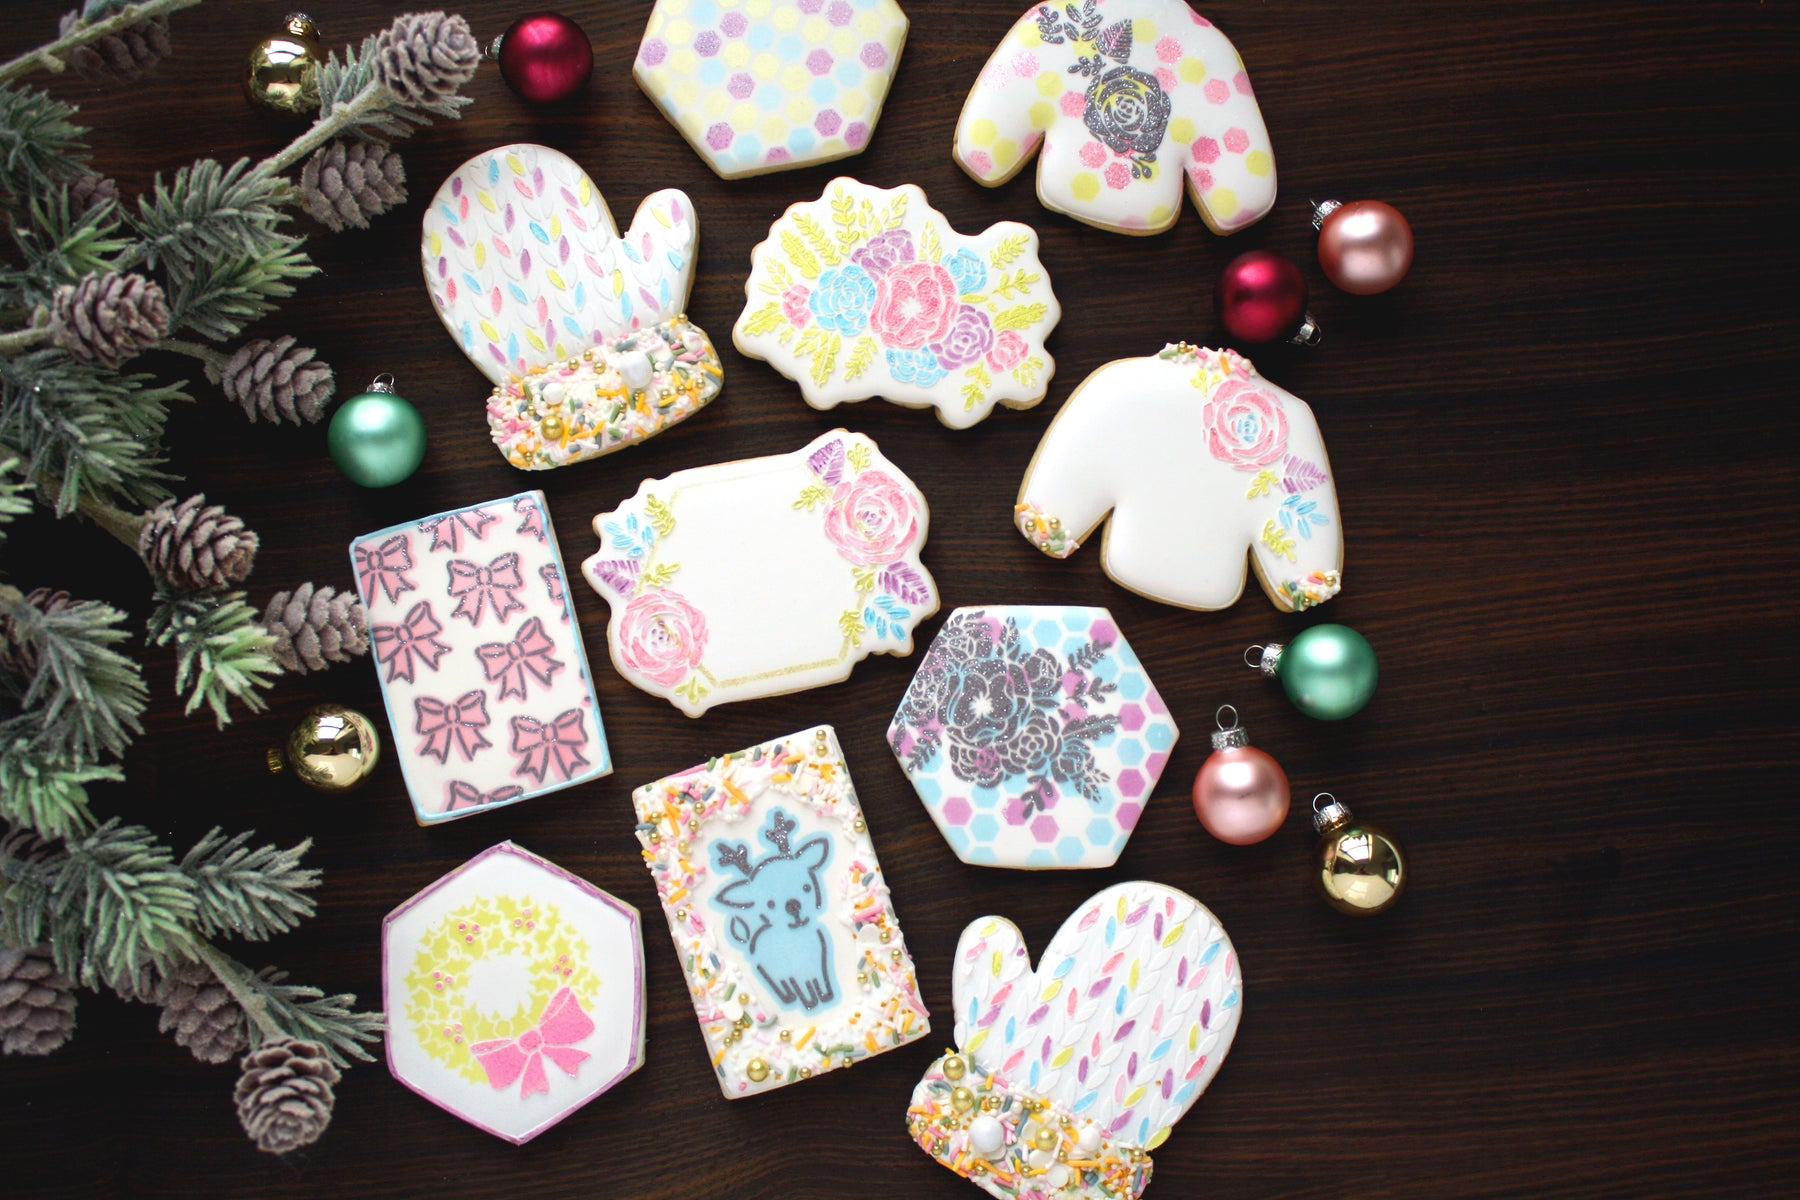 Vintage Inspired Pastel Christmas Cookies - How To